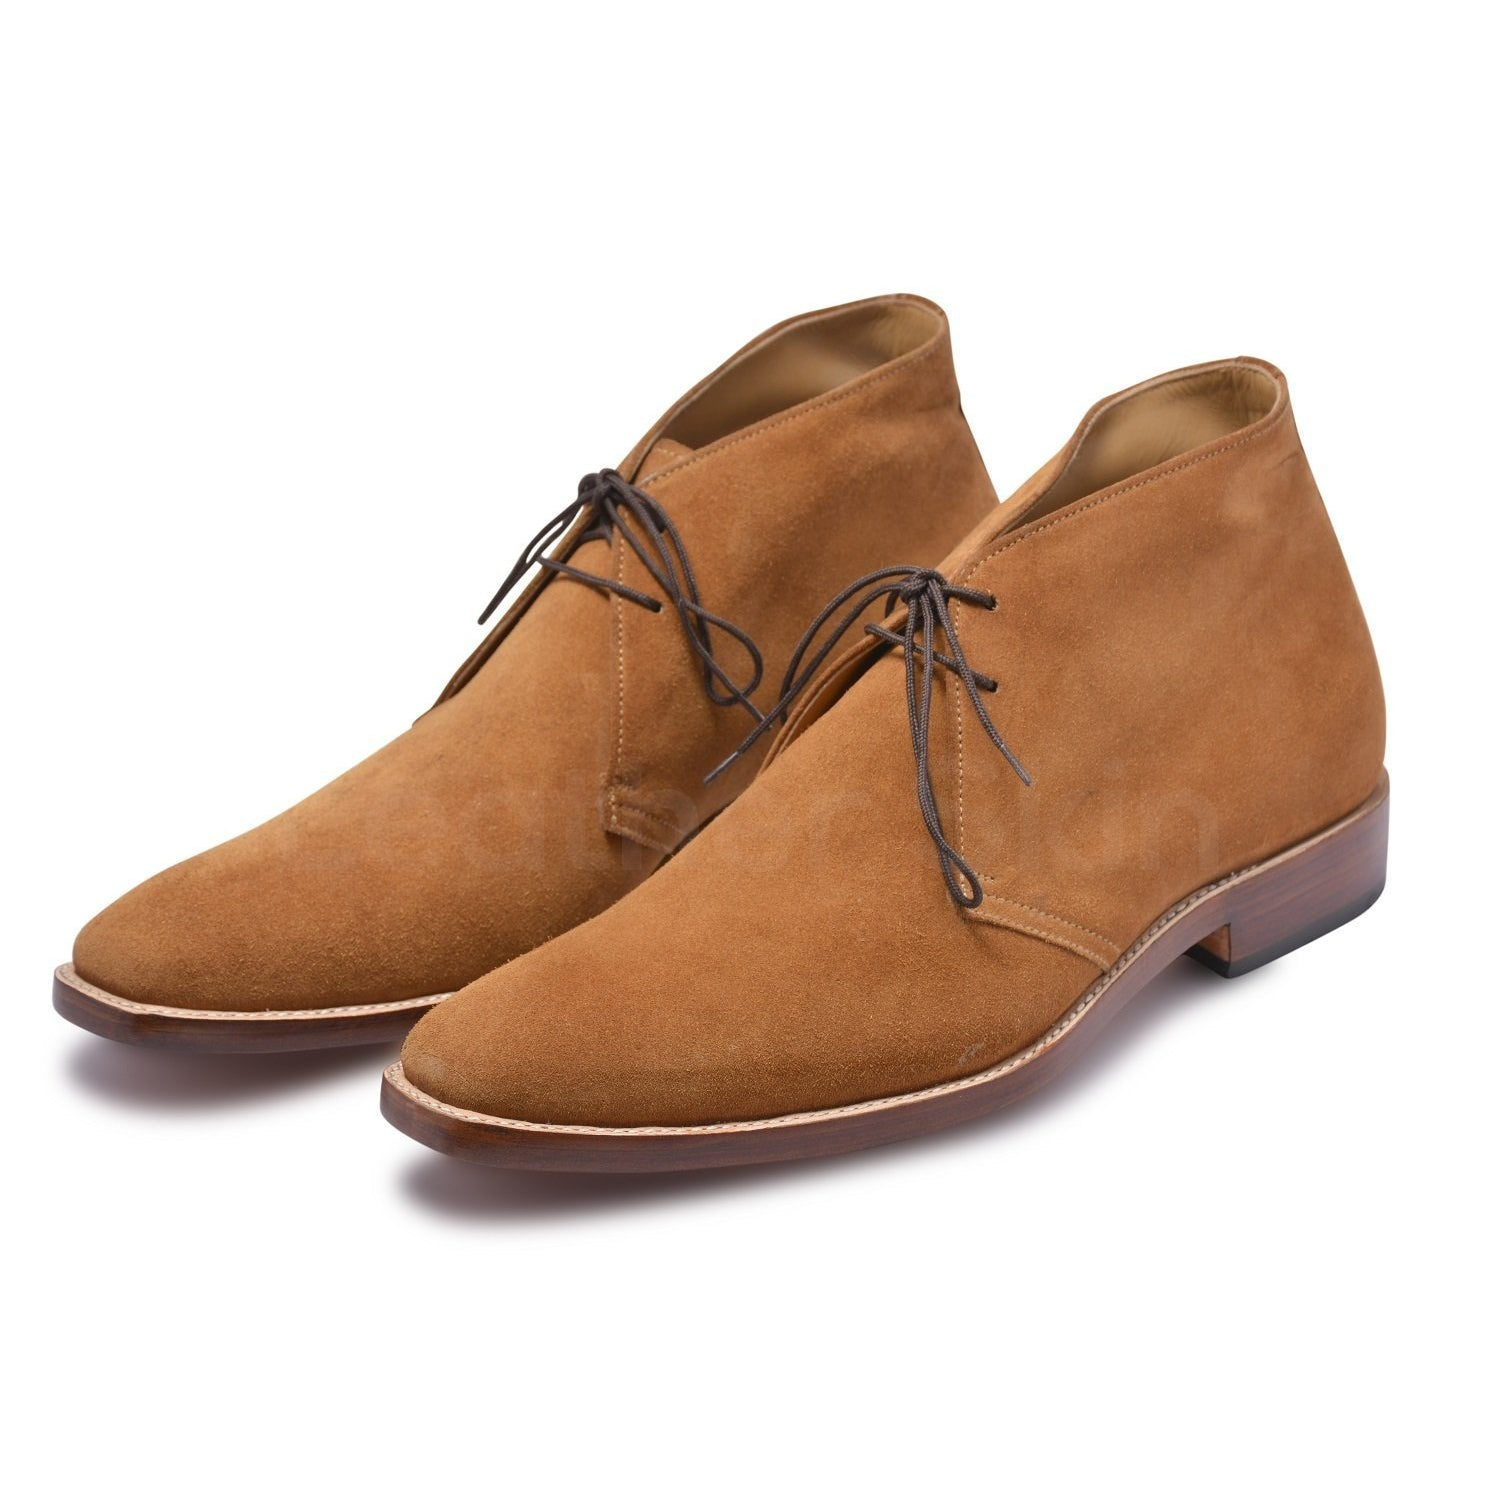 tan leather boots mens in chukka style